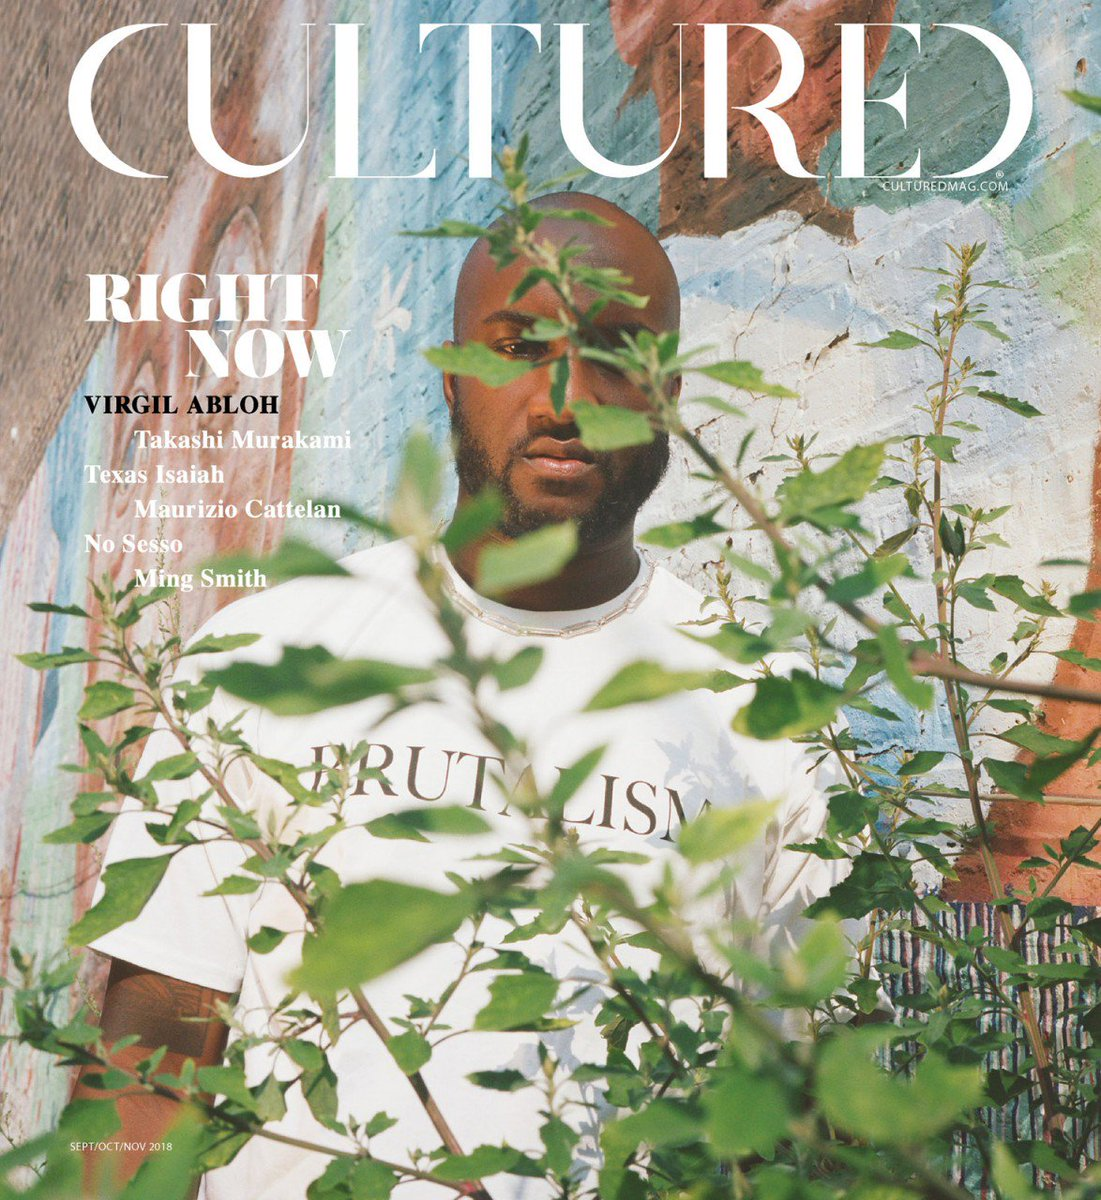 Don't forget to check out the 2018 #ImageMakerAward winner @petracollins with her latest cover of @virgilabloh for @CulturedMag. #CanadianArtist #CAFAwards